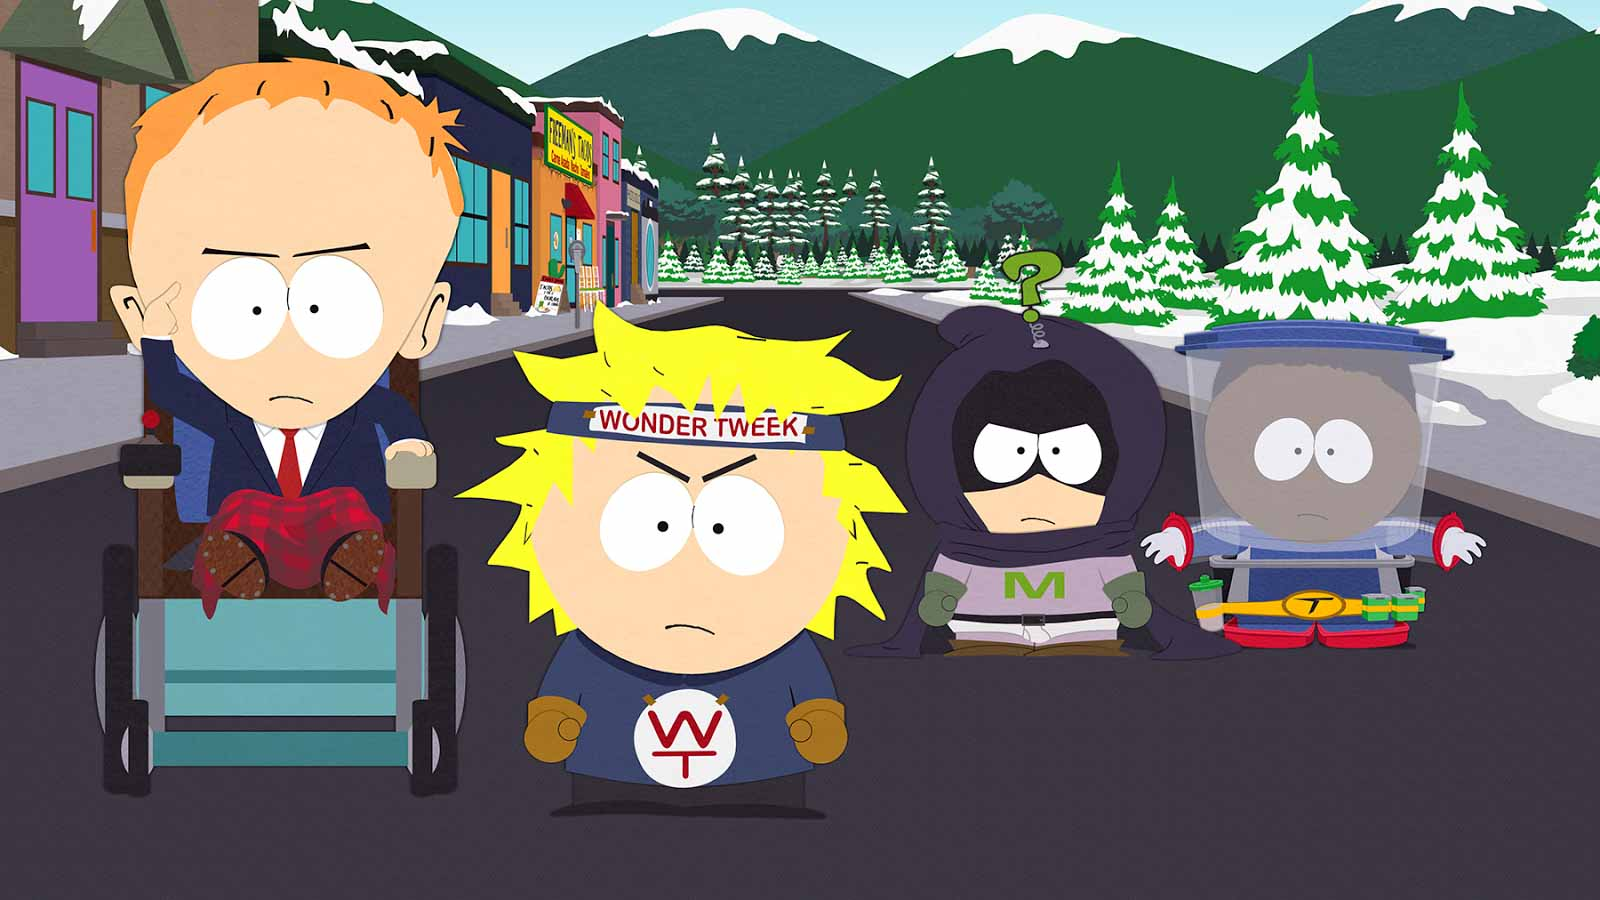 South Park The Fractured But Whole - Wonder Tweek